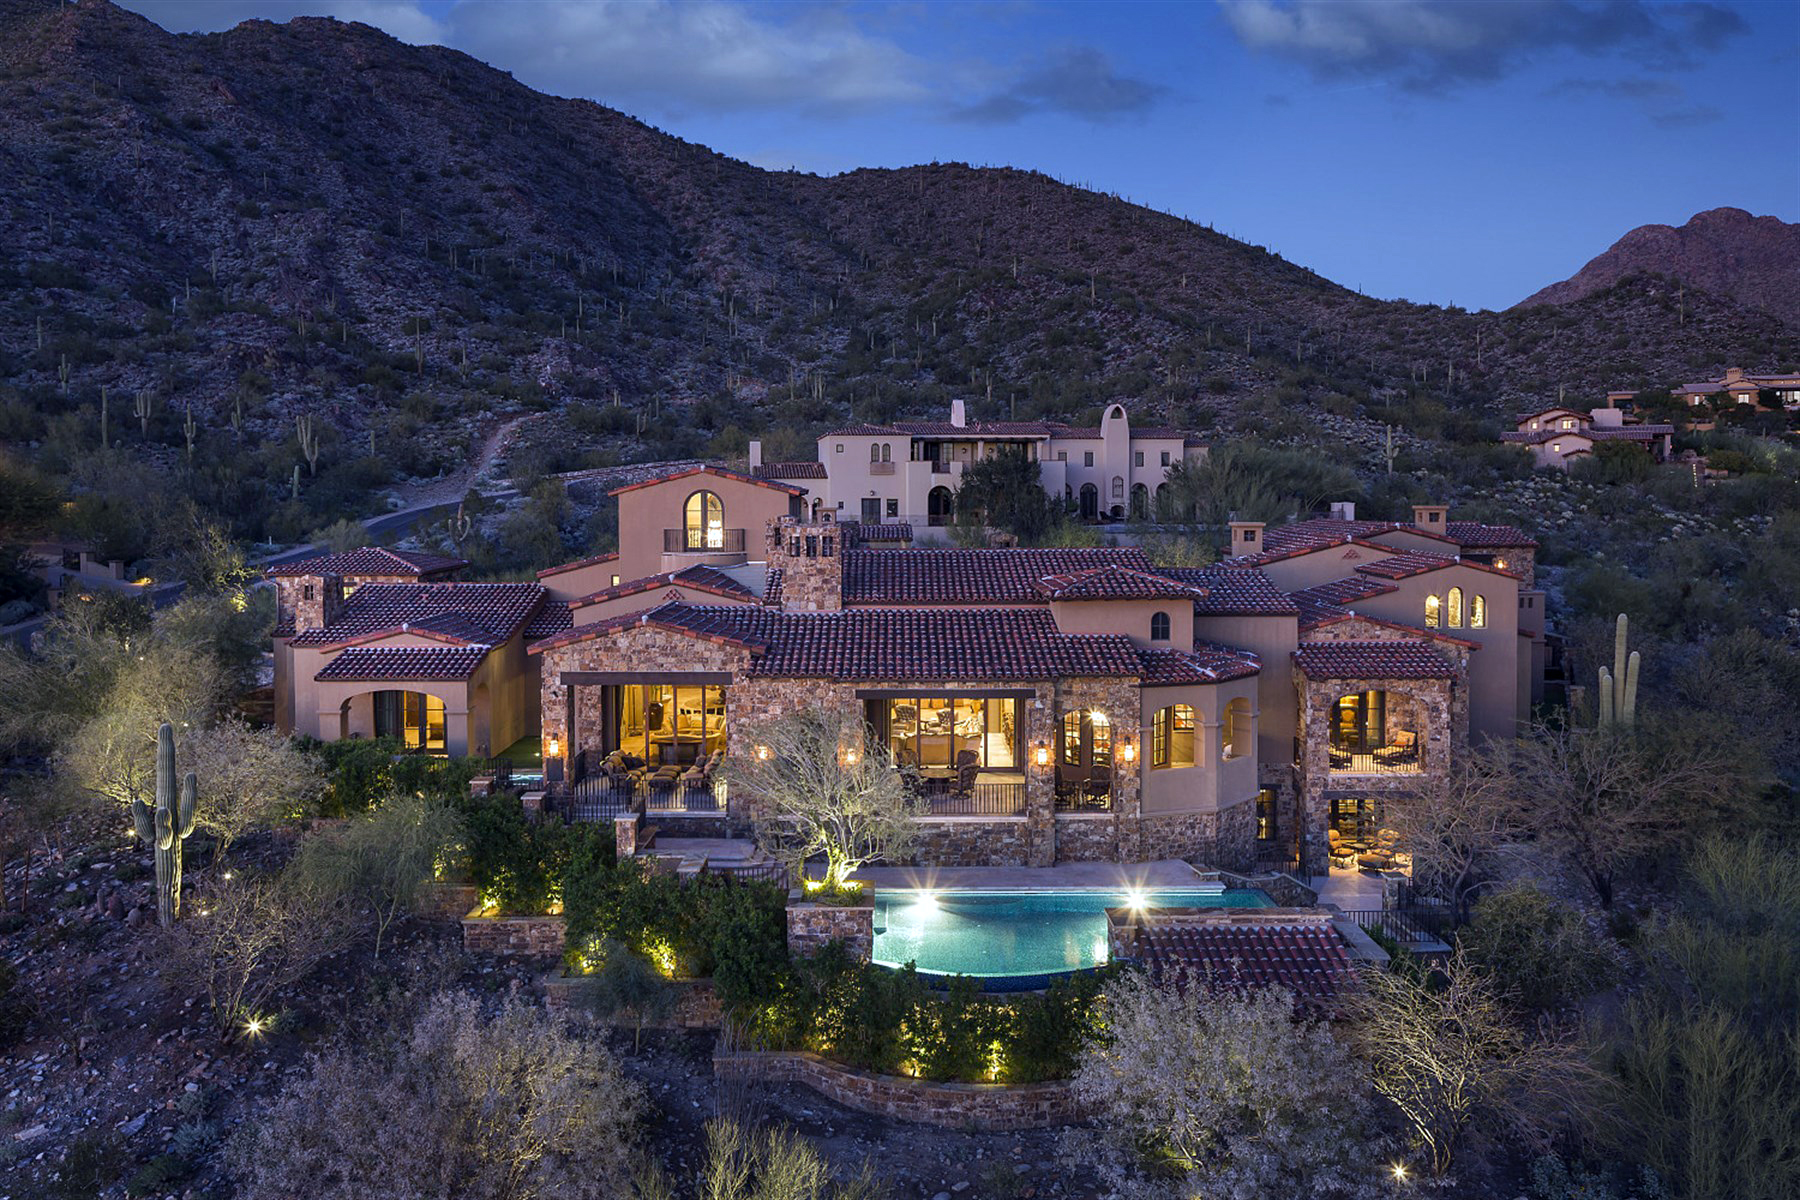 Casa Unifamiliar por un Venta en Exquisite European Manor in The Exclusive Upper Canyon at Silverleaf 20913 N 104th Street #1488 Scottsdale, Arizona 85255 Estados Unidos